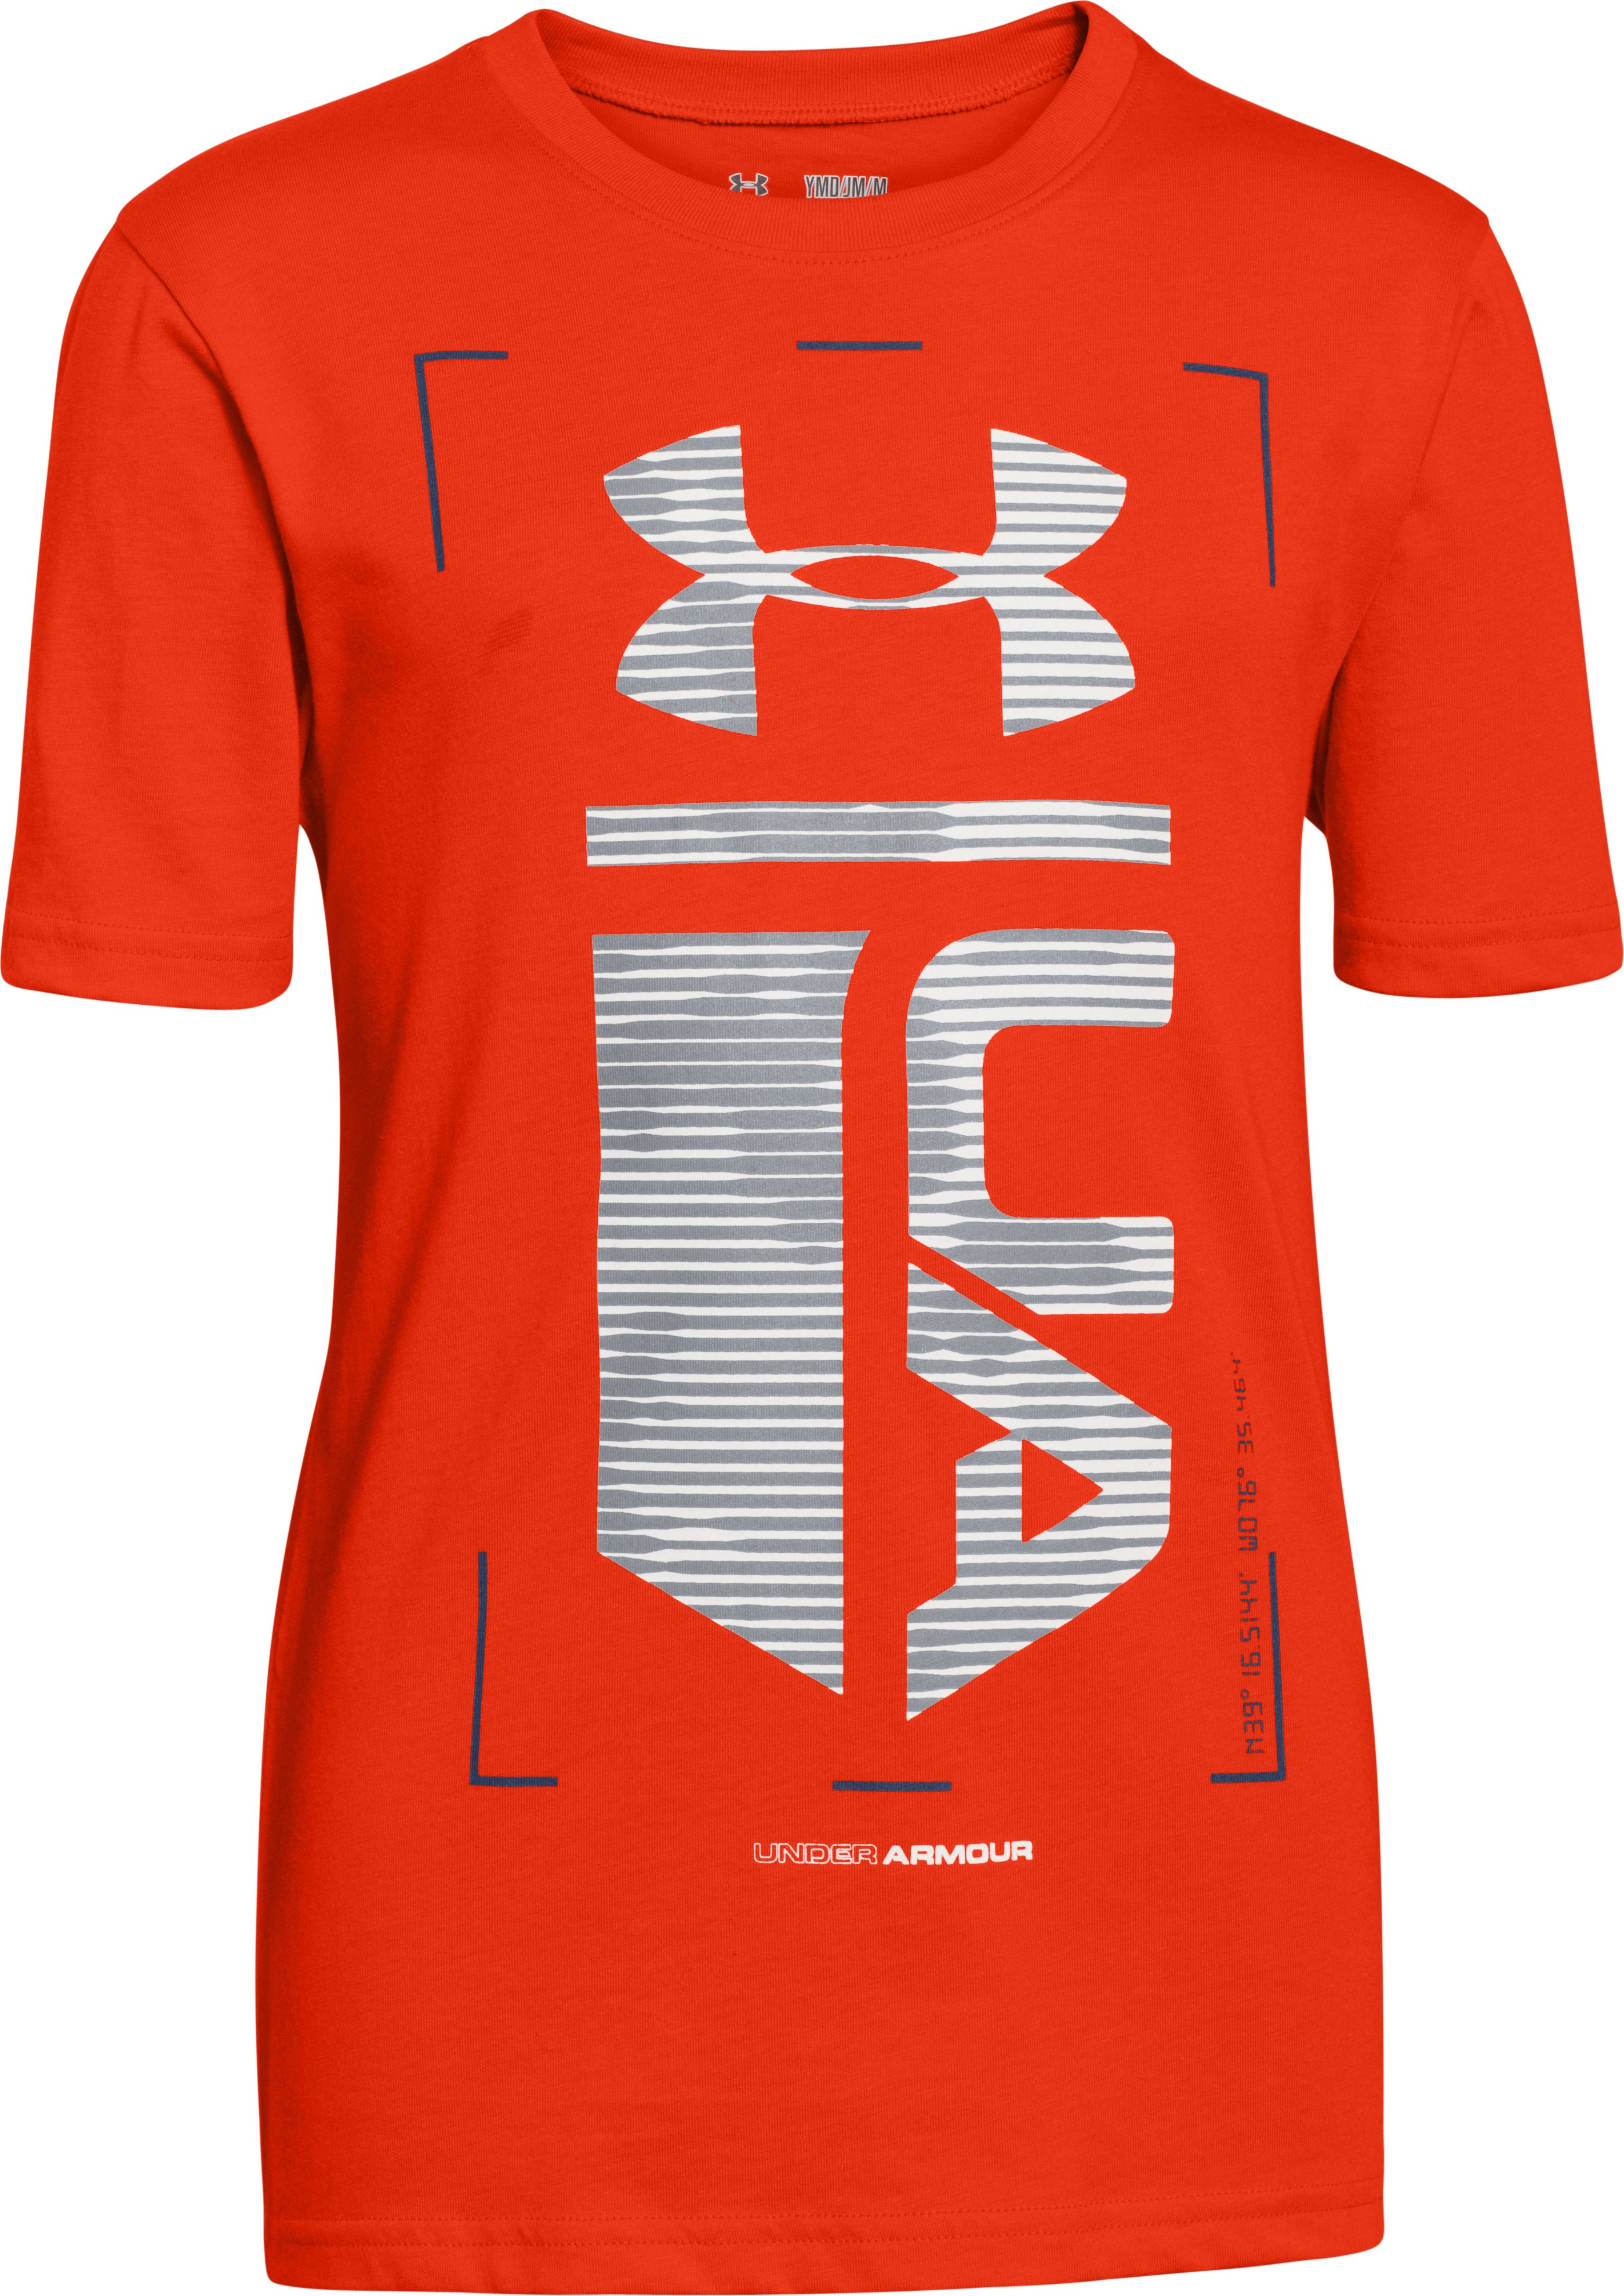 Boys' UA Double Time T-Shirt, Volcano